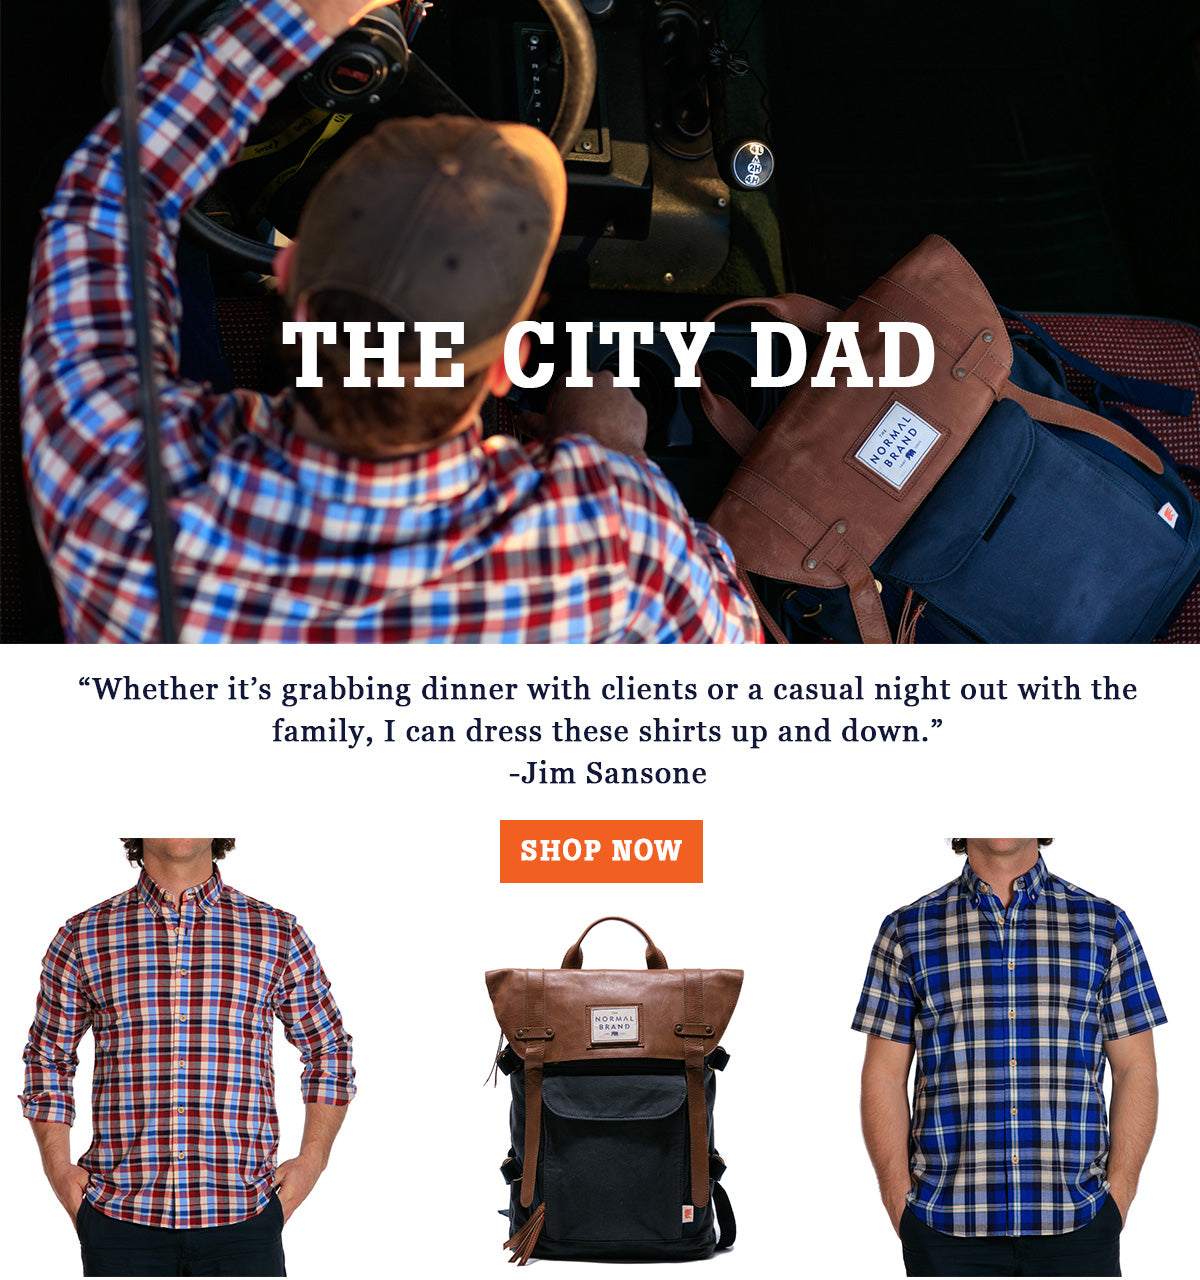 The City Dad